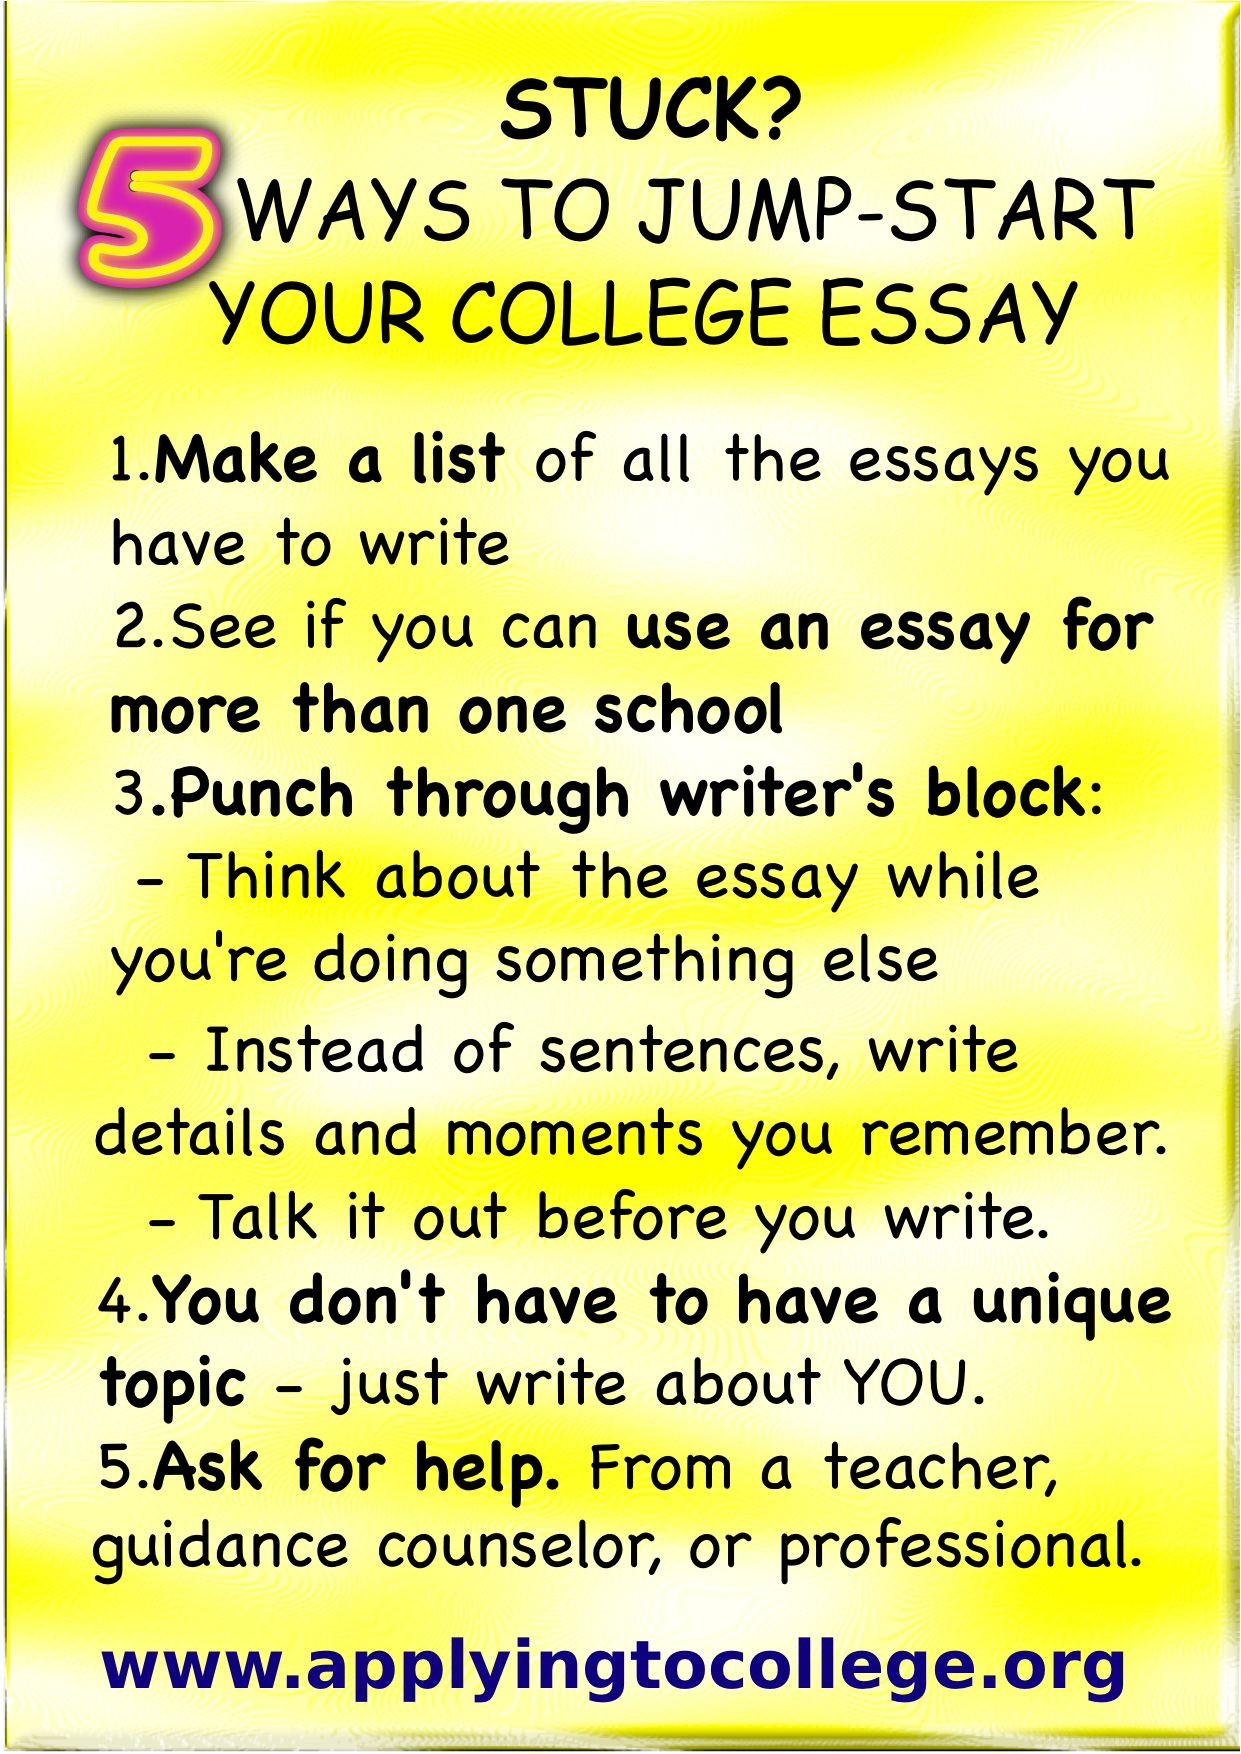 017 Writing College Application Essays Essay Marvelous Tips For Level Admission Sample Guide To Full